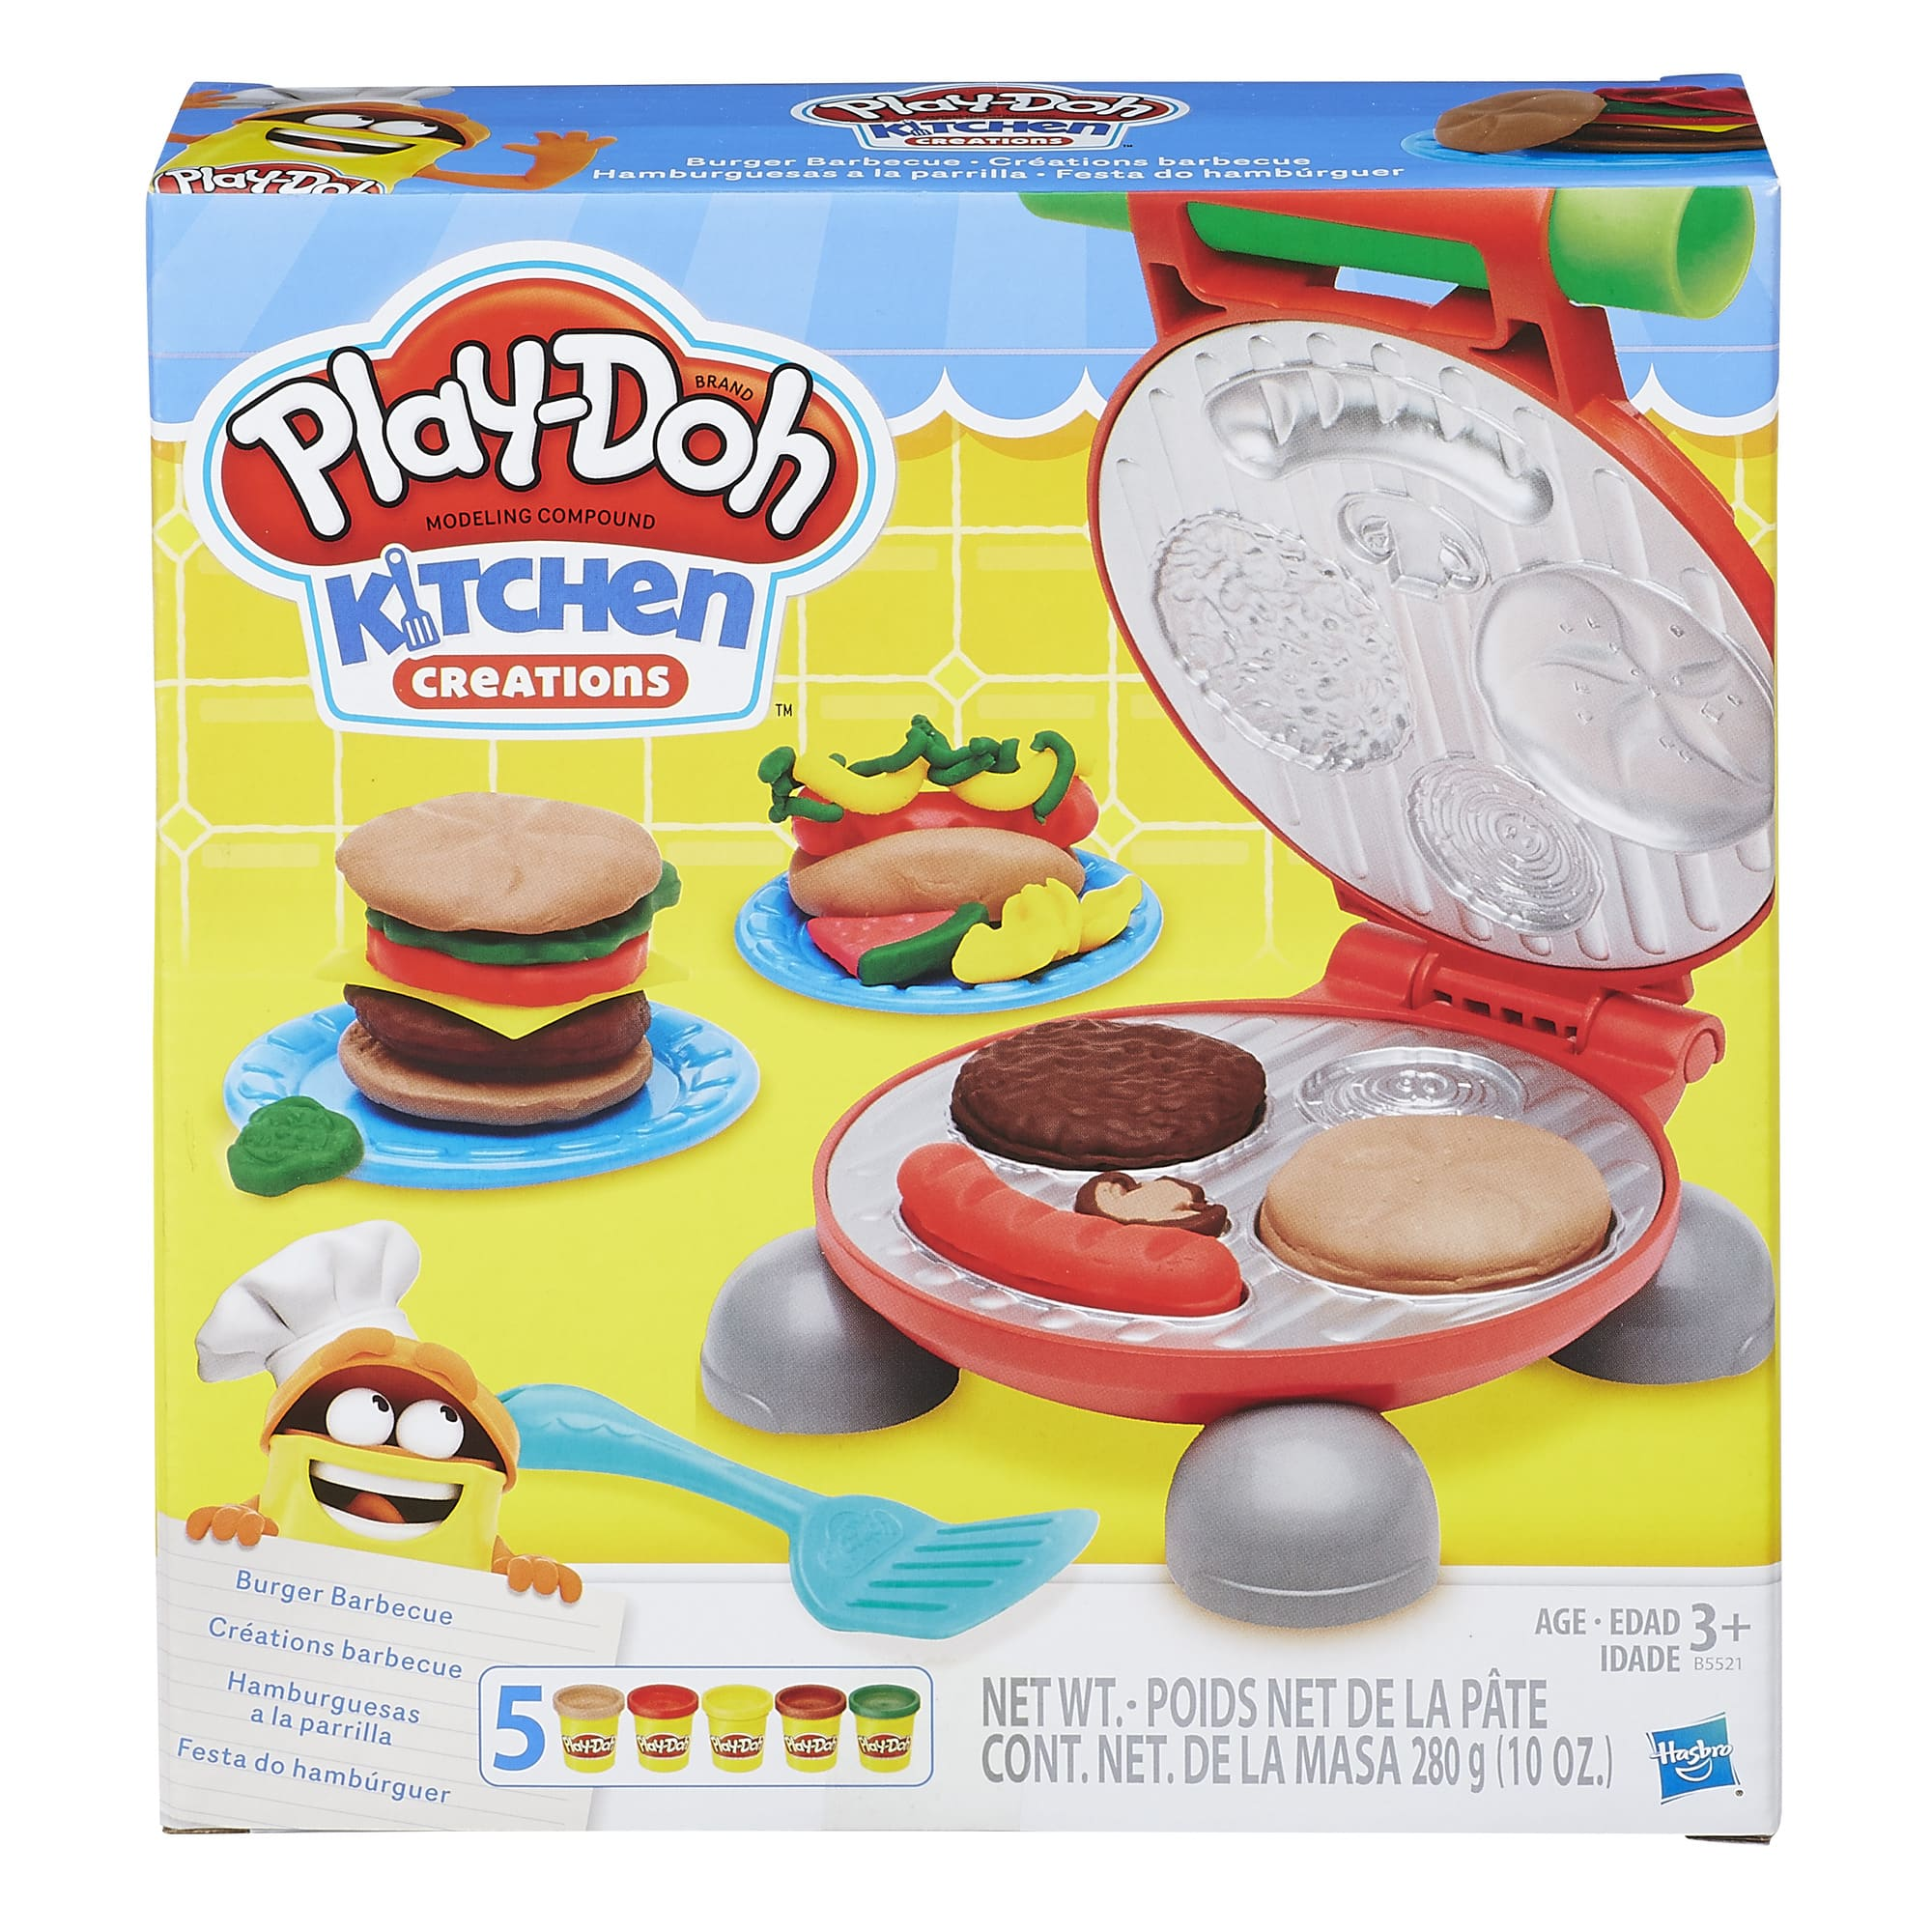 Play-Doh Kitchen Creations Burger Barbecue $5.00 w/ Prime shipping or Walmart Pickup